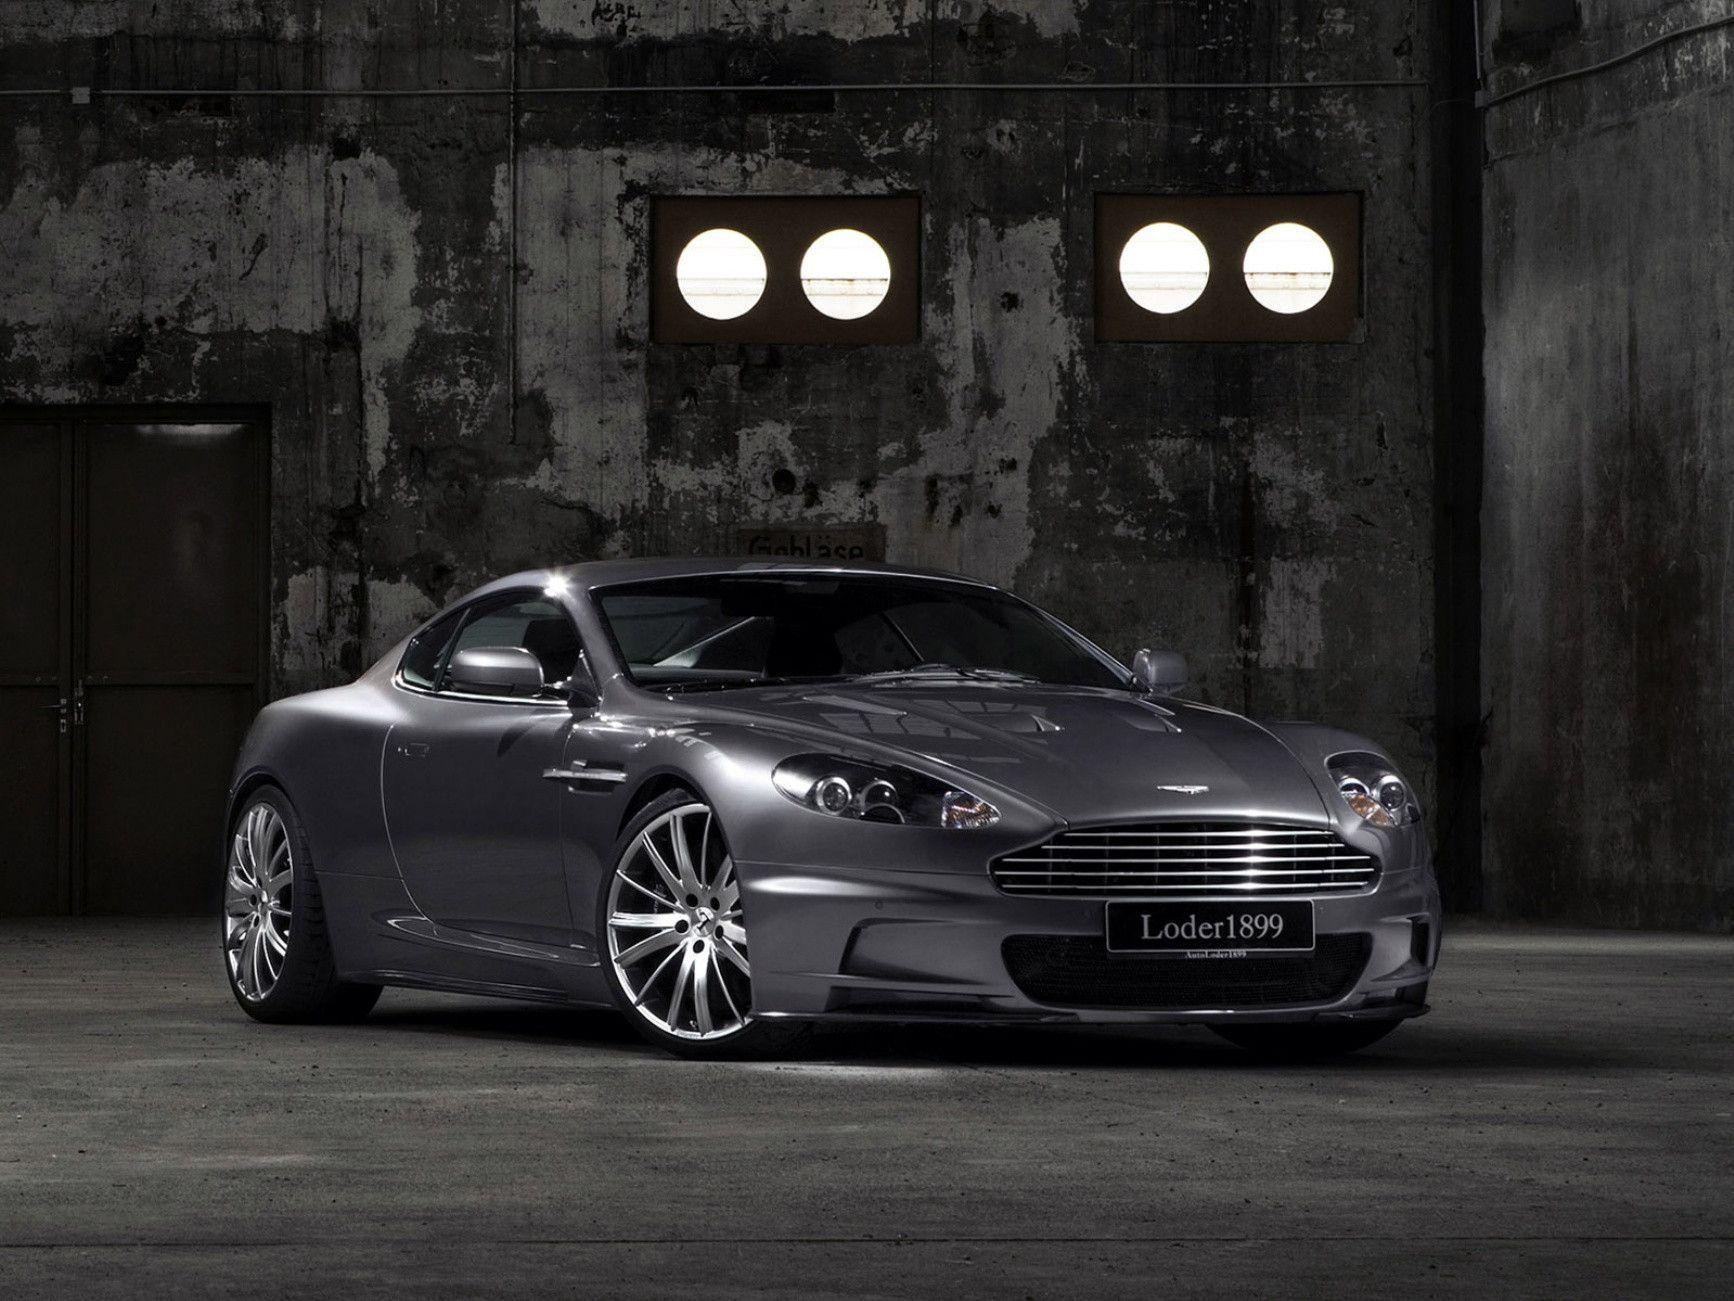 aston martin dbs v12 wallpaper - photo #18